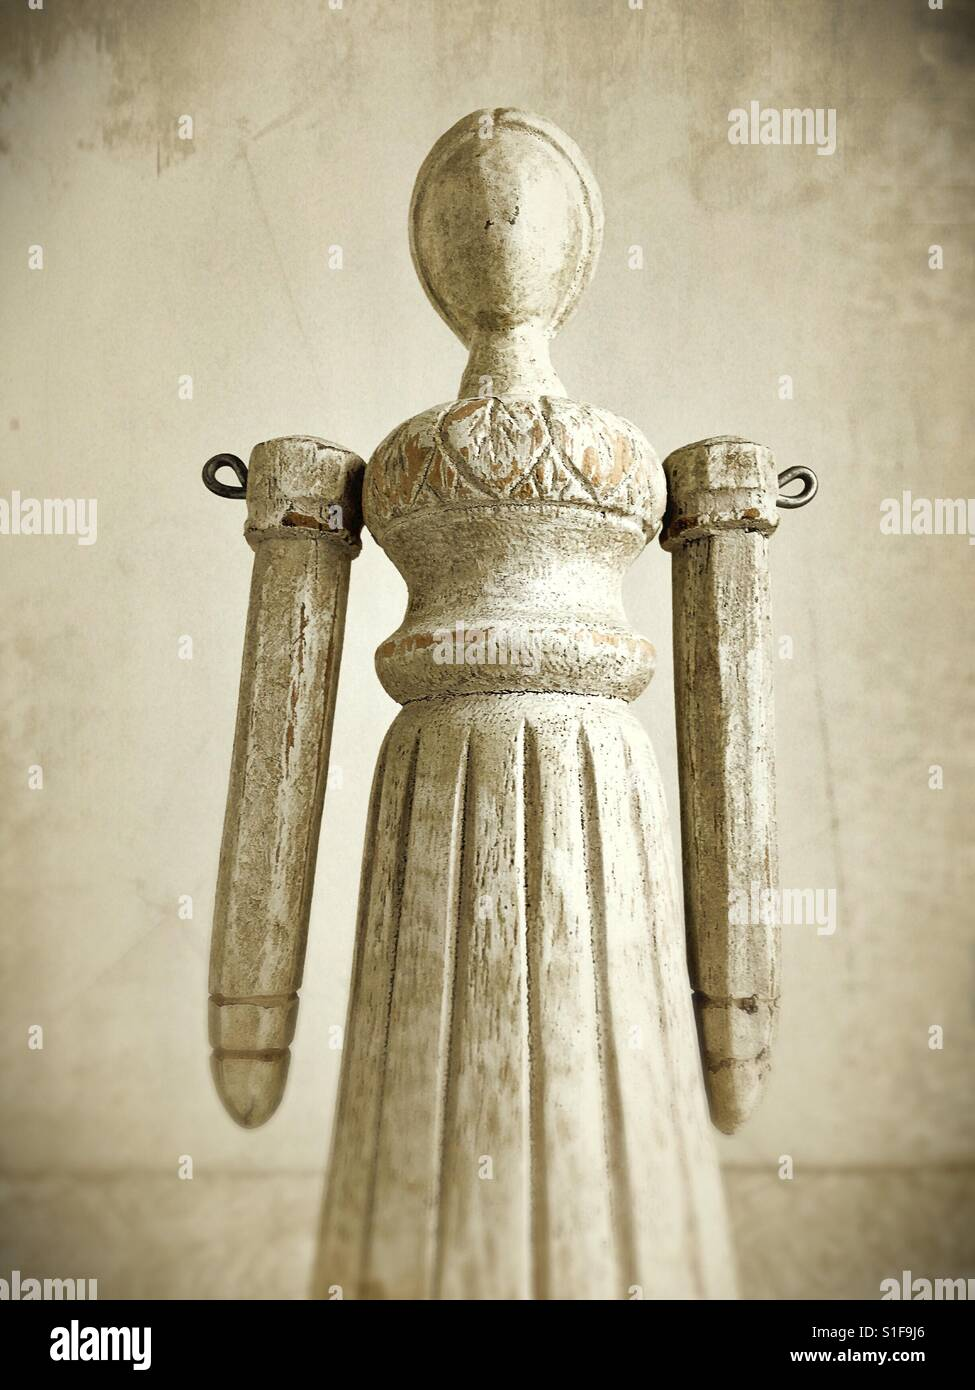 An old fashioned looking female wooden figure. - Stock Image